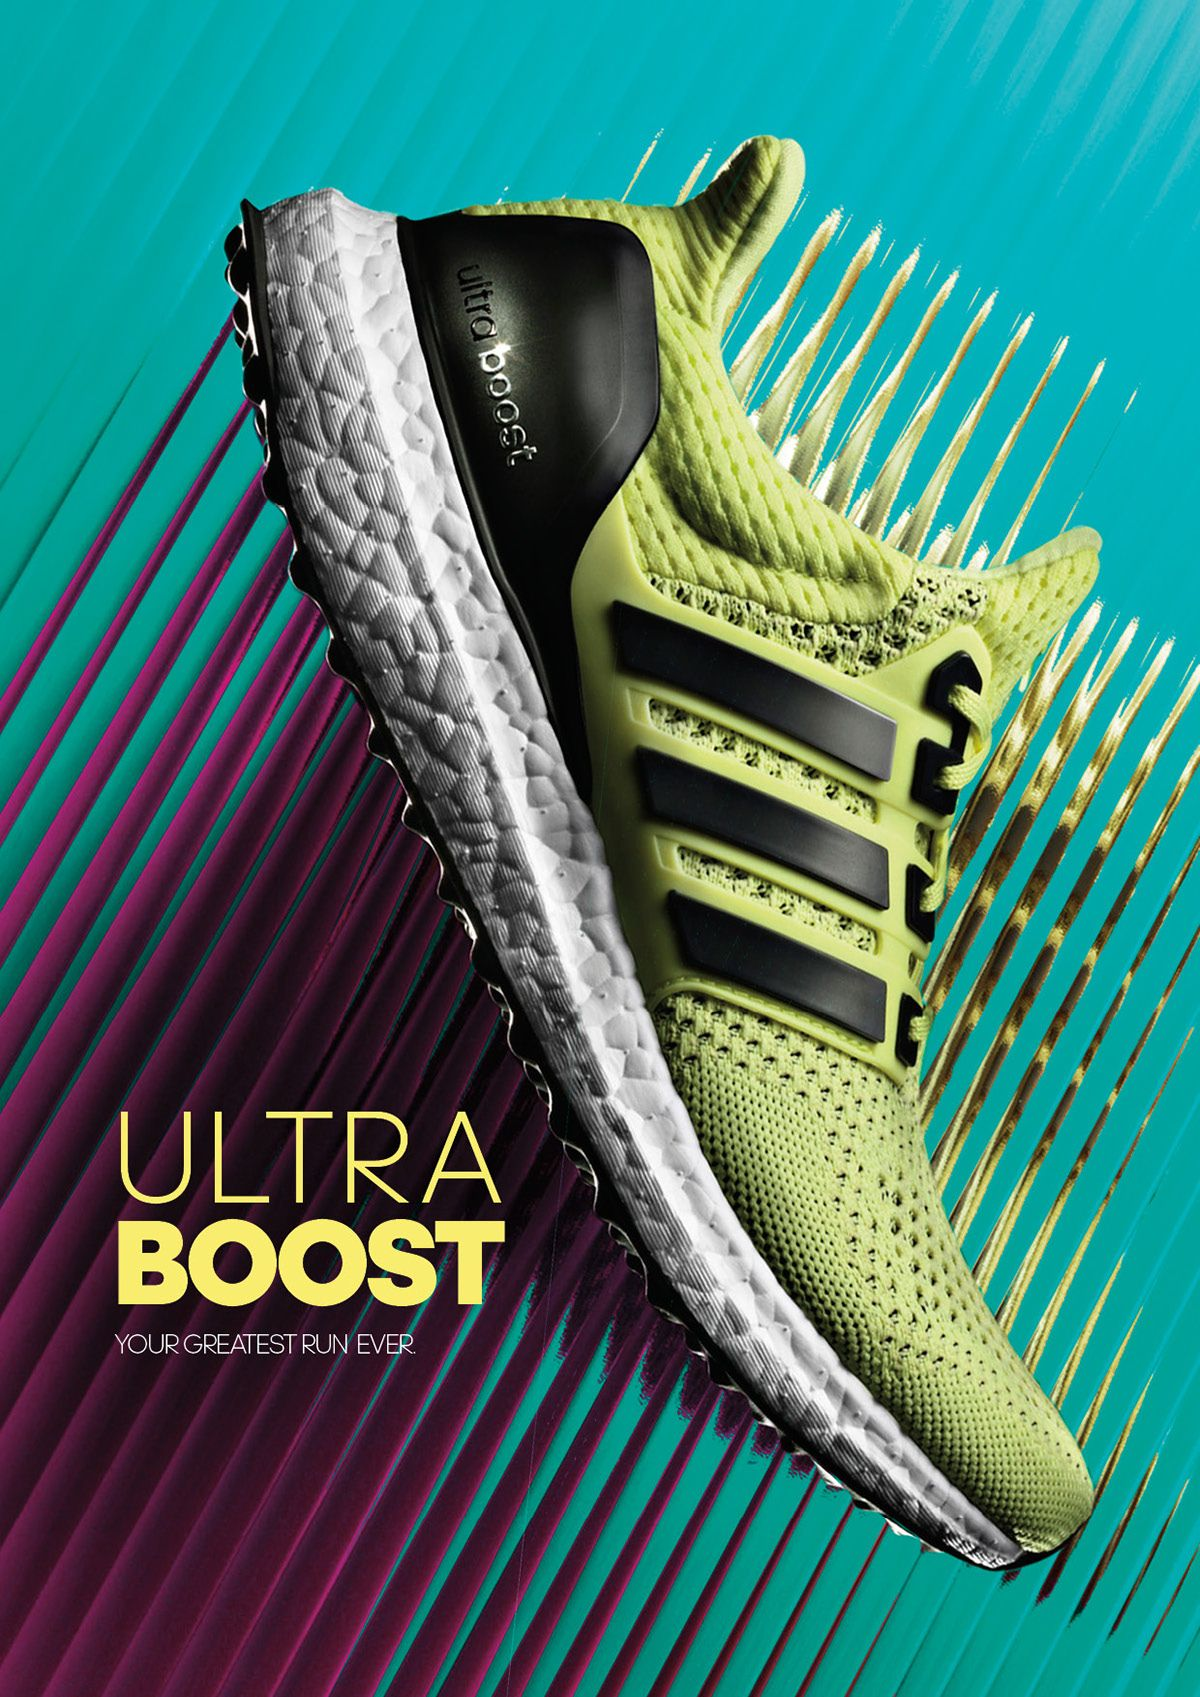 boost adidas campaign